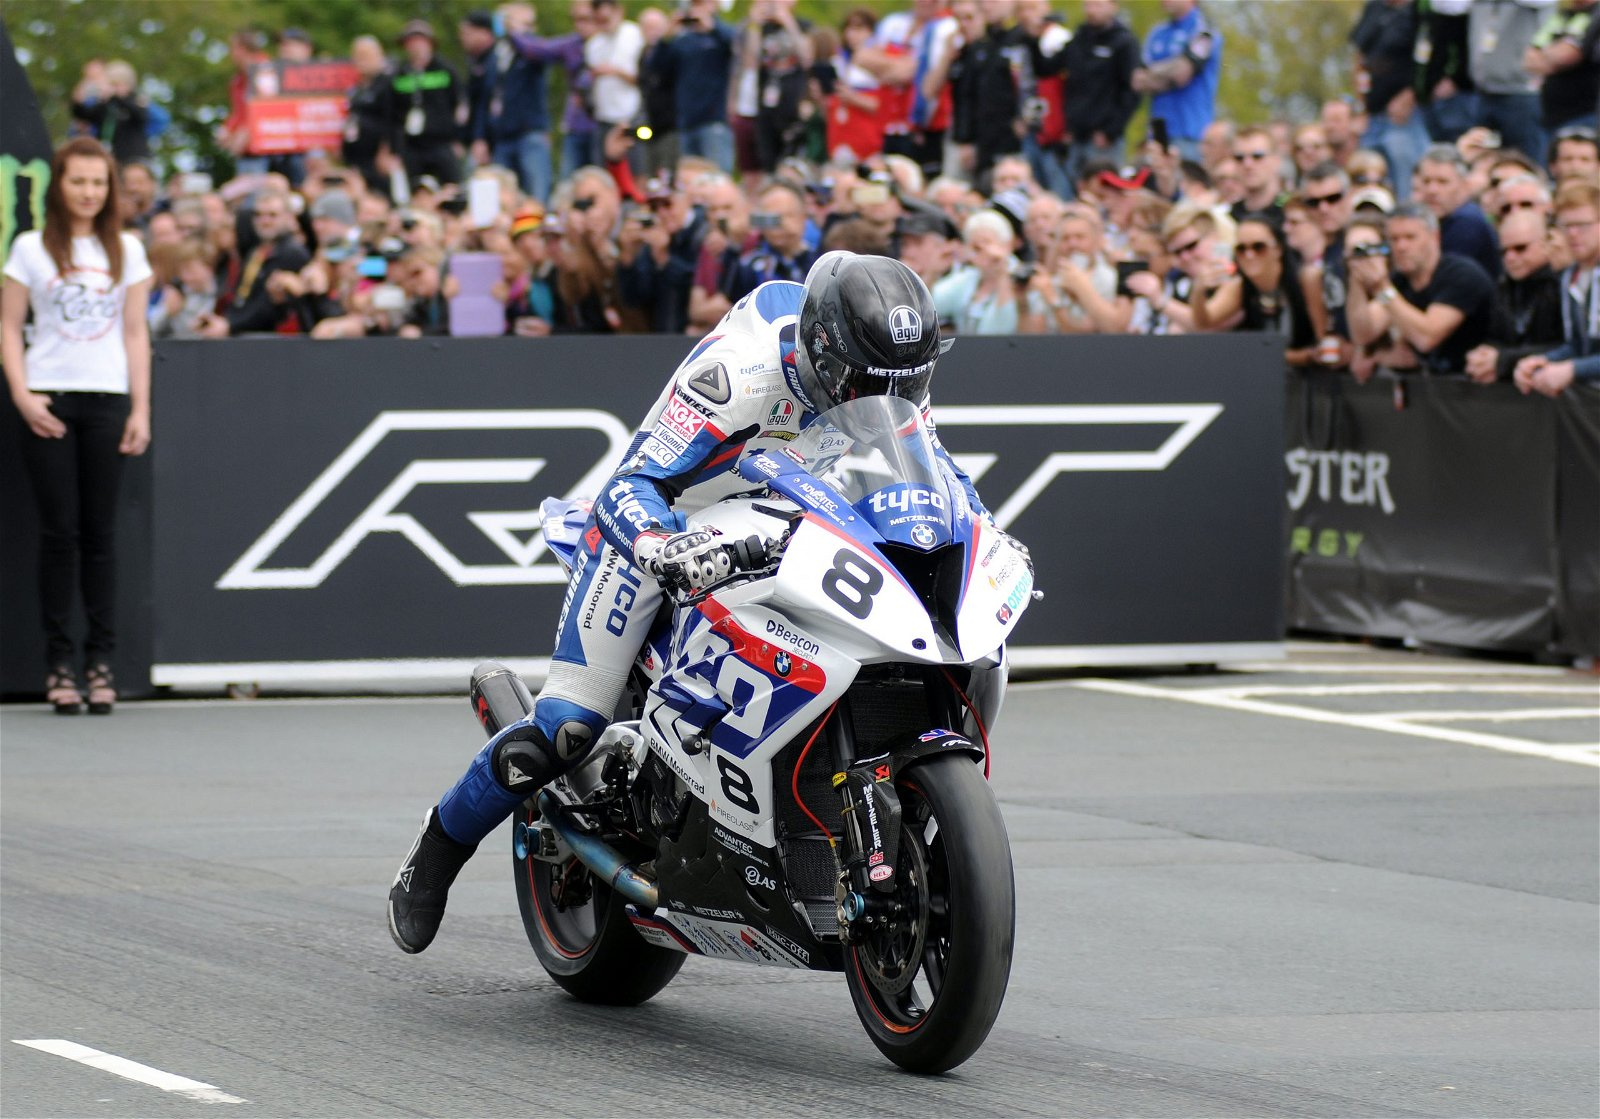 SUPERBIKE TT RACE courtesy of iomtt.com